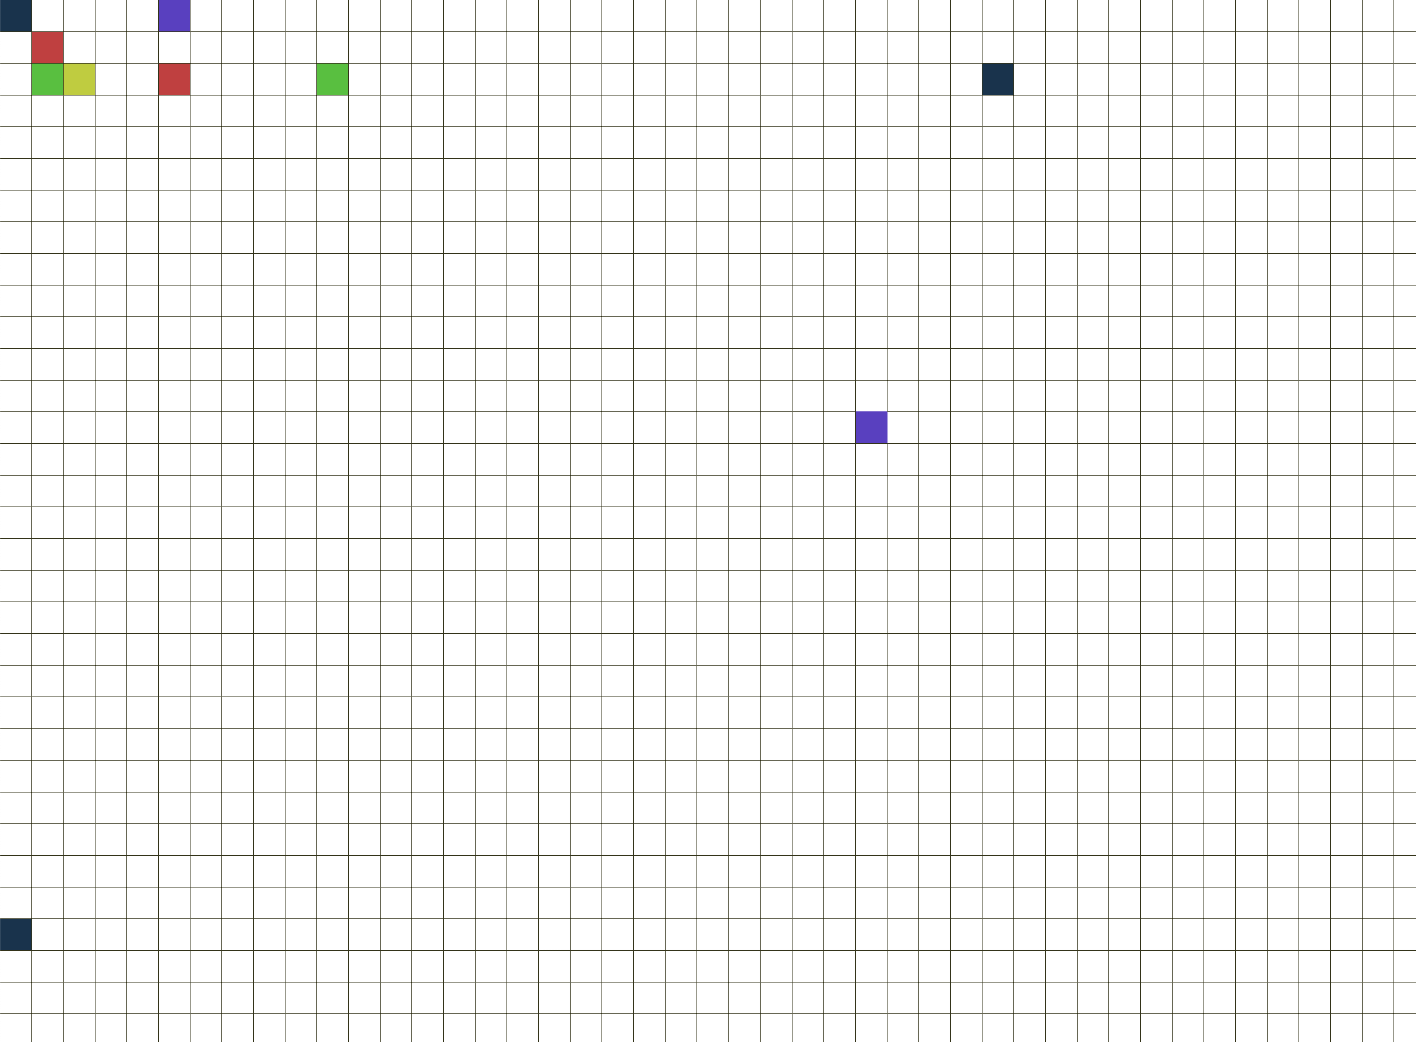 A square grid with some squares painted in random colors